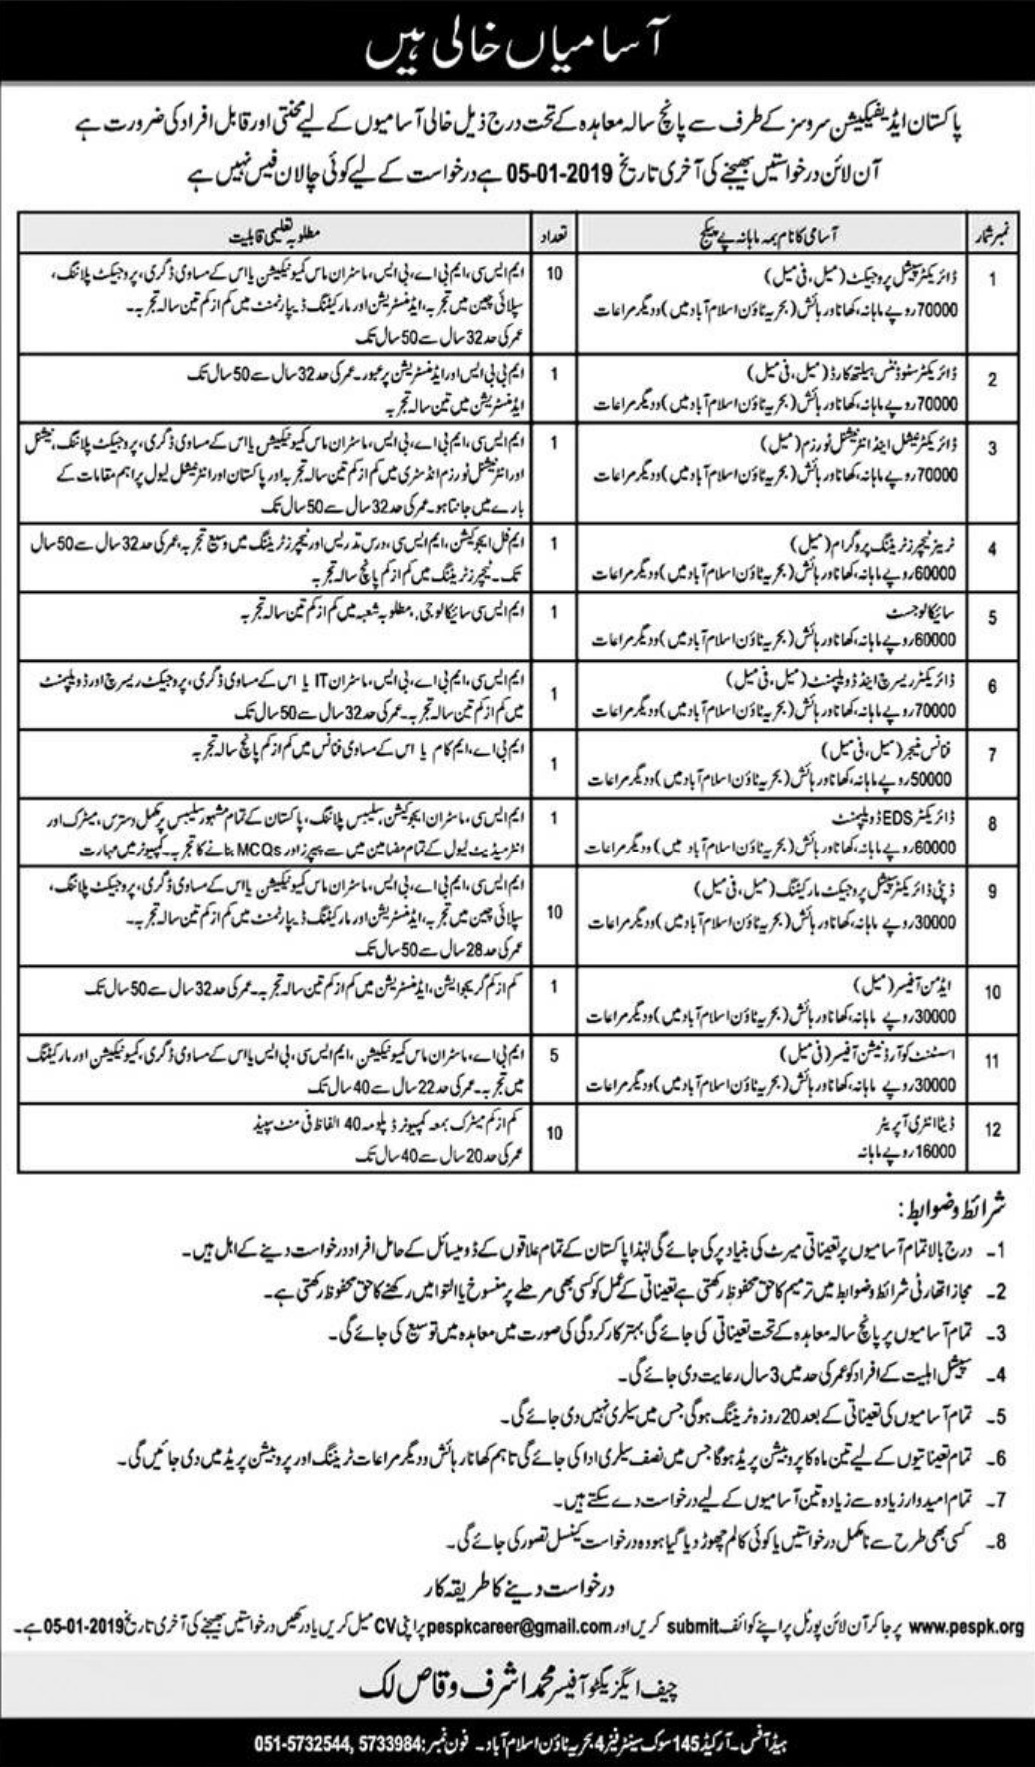 Pakistan Edification Services Jobs 2018 Latest